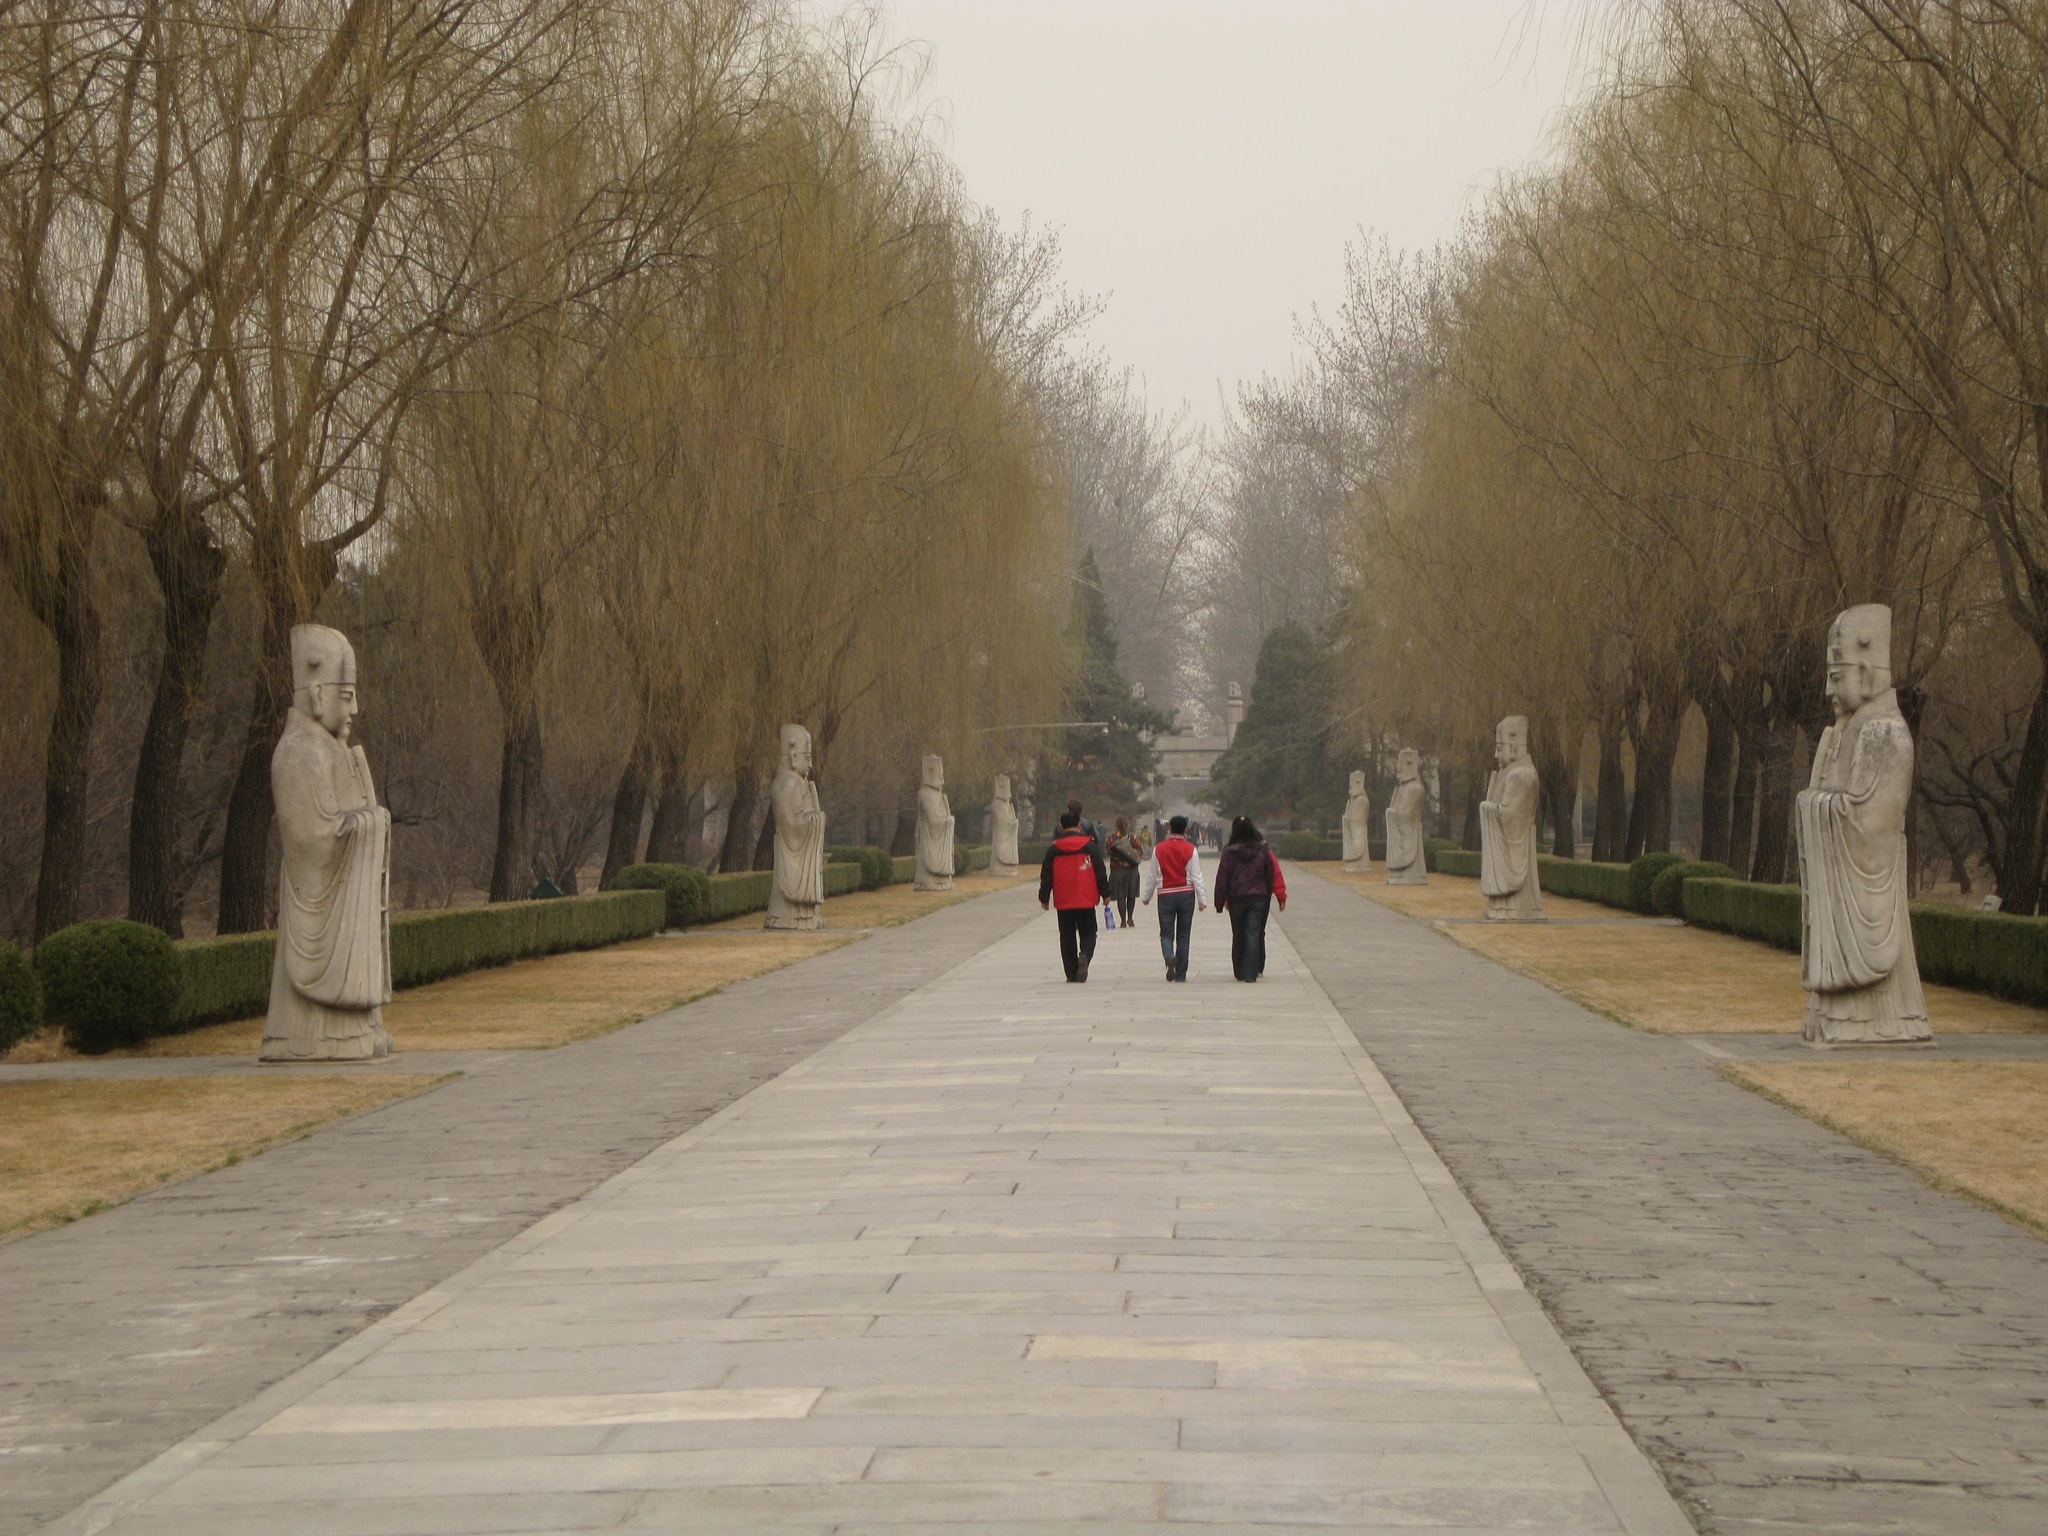 the sacred road leads to the treasure of the ming dynasty The sacred way is a 4-mile long road, which leads to the ming tombs is a 4-mile long road, which leads to the ming tombs in built during the ming dynasty.